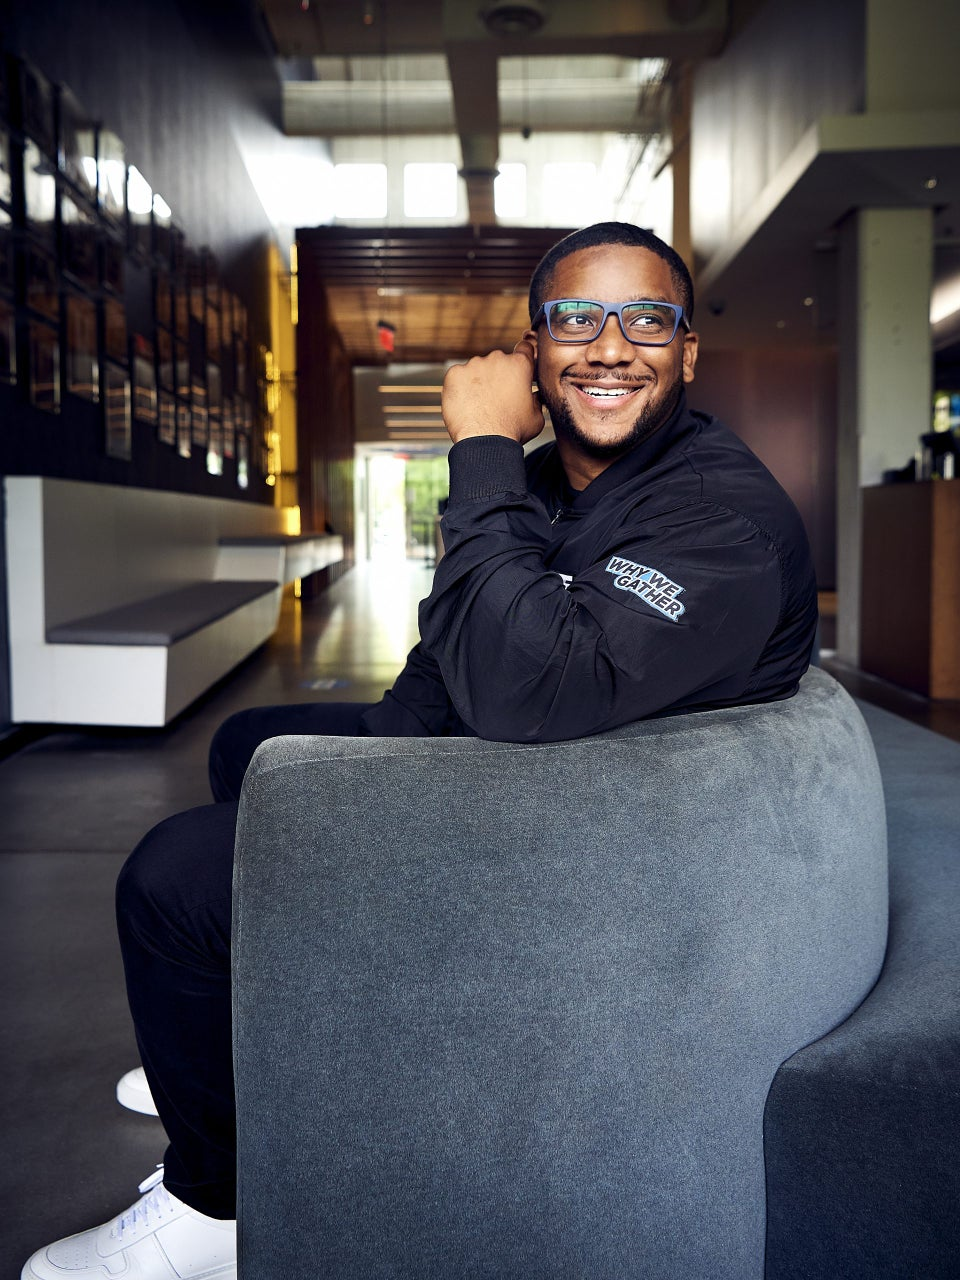 """Ryan Wilson, The CEO And Co-Founder Of """"The Gathering Spot"""" Created Space For The Black Community To Come Together & Change The World"""